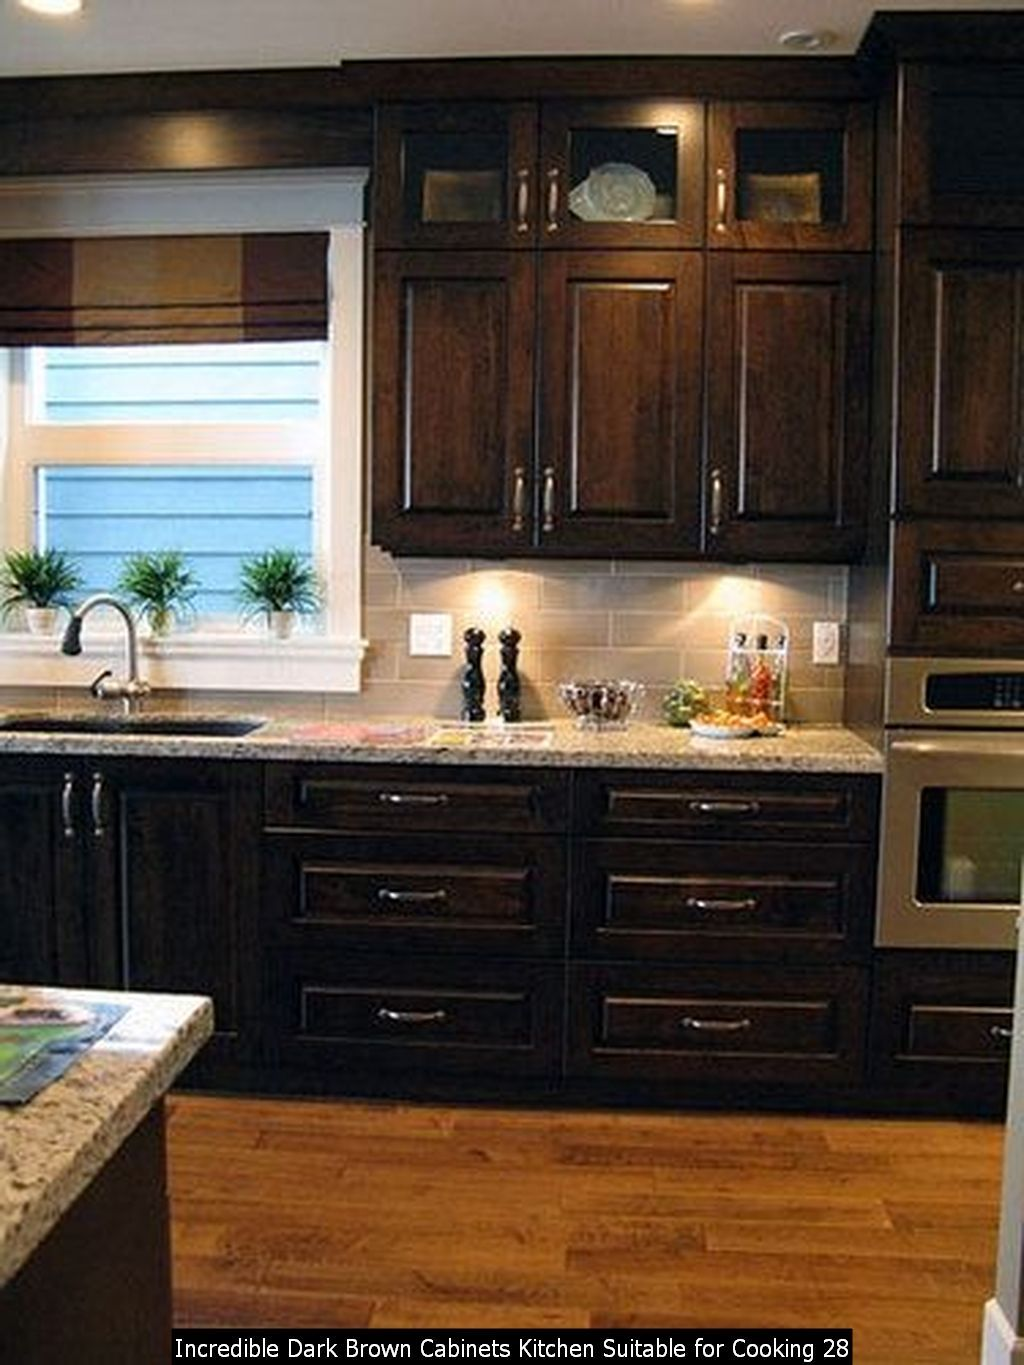 30+ Incredible Dark Brown Cabinets Kitchen Suitable for ...